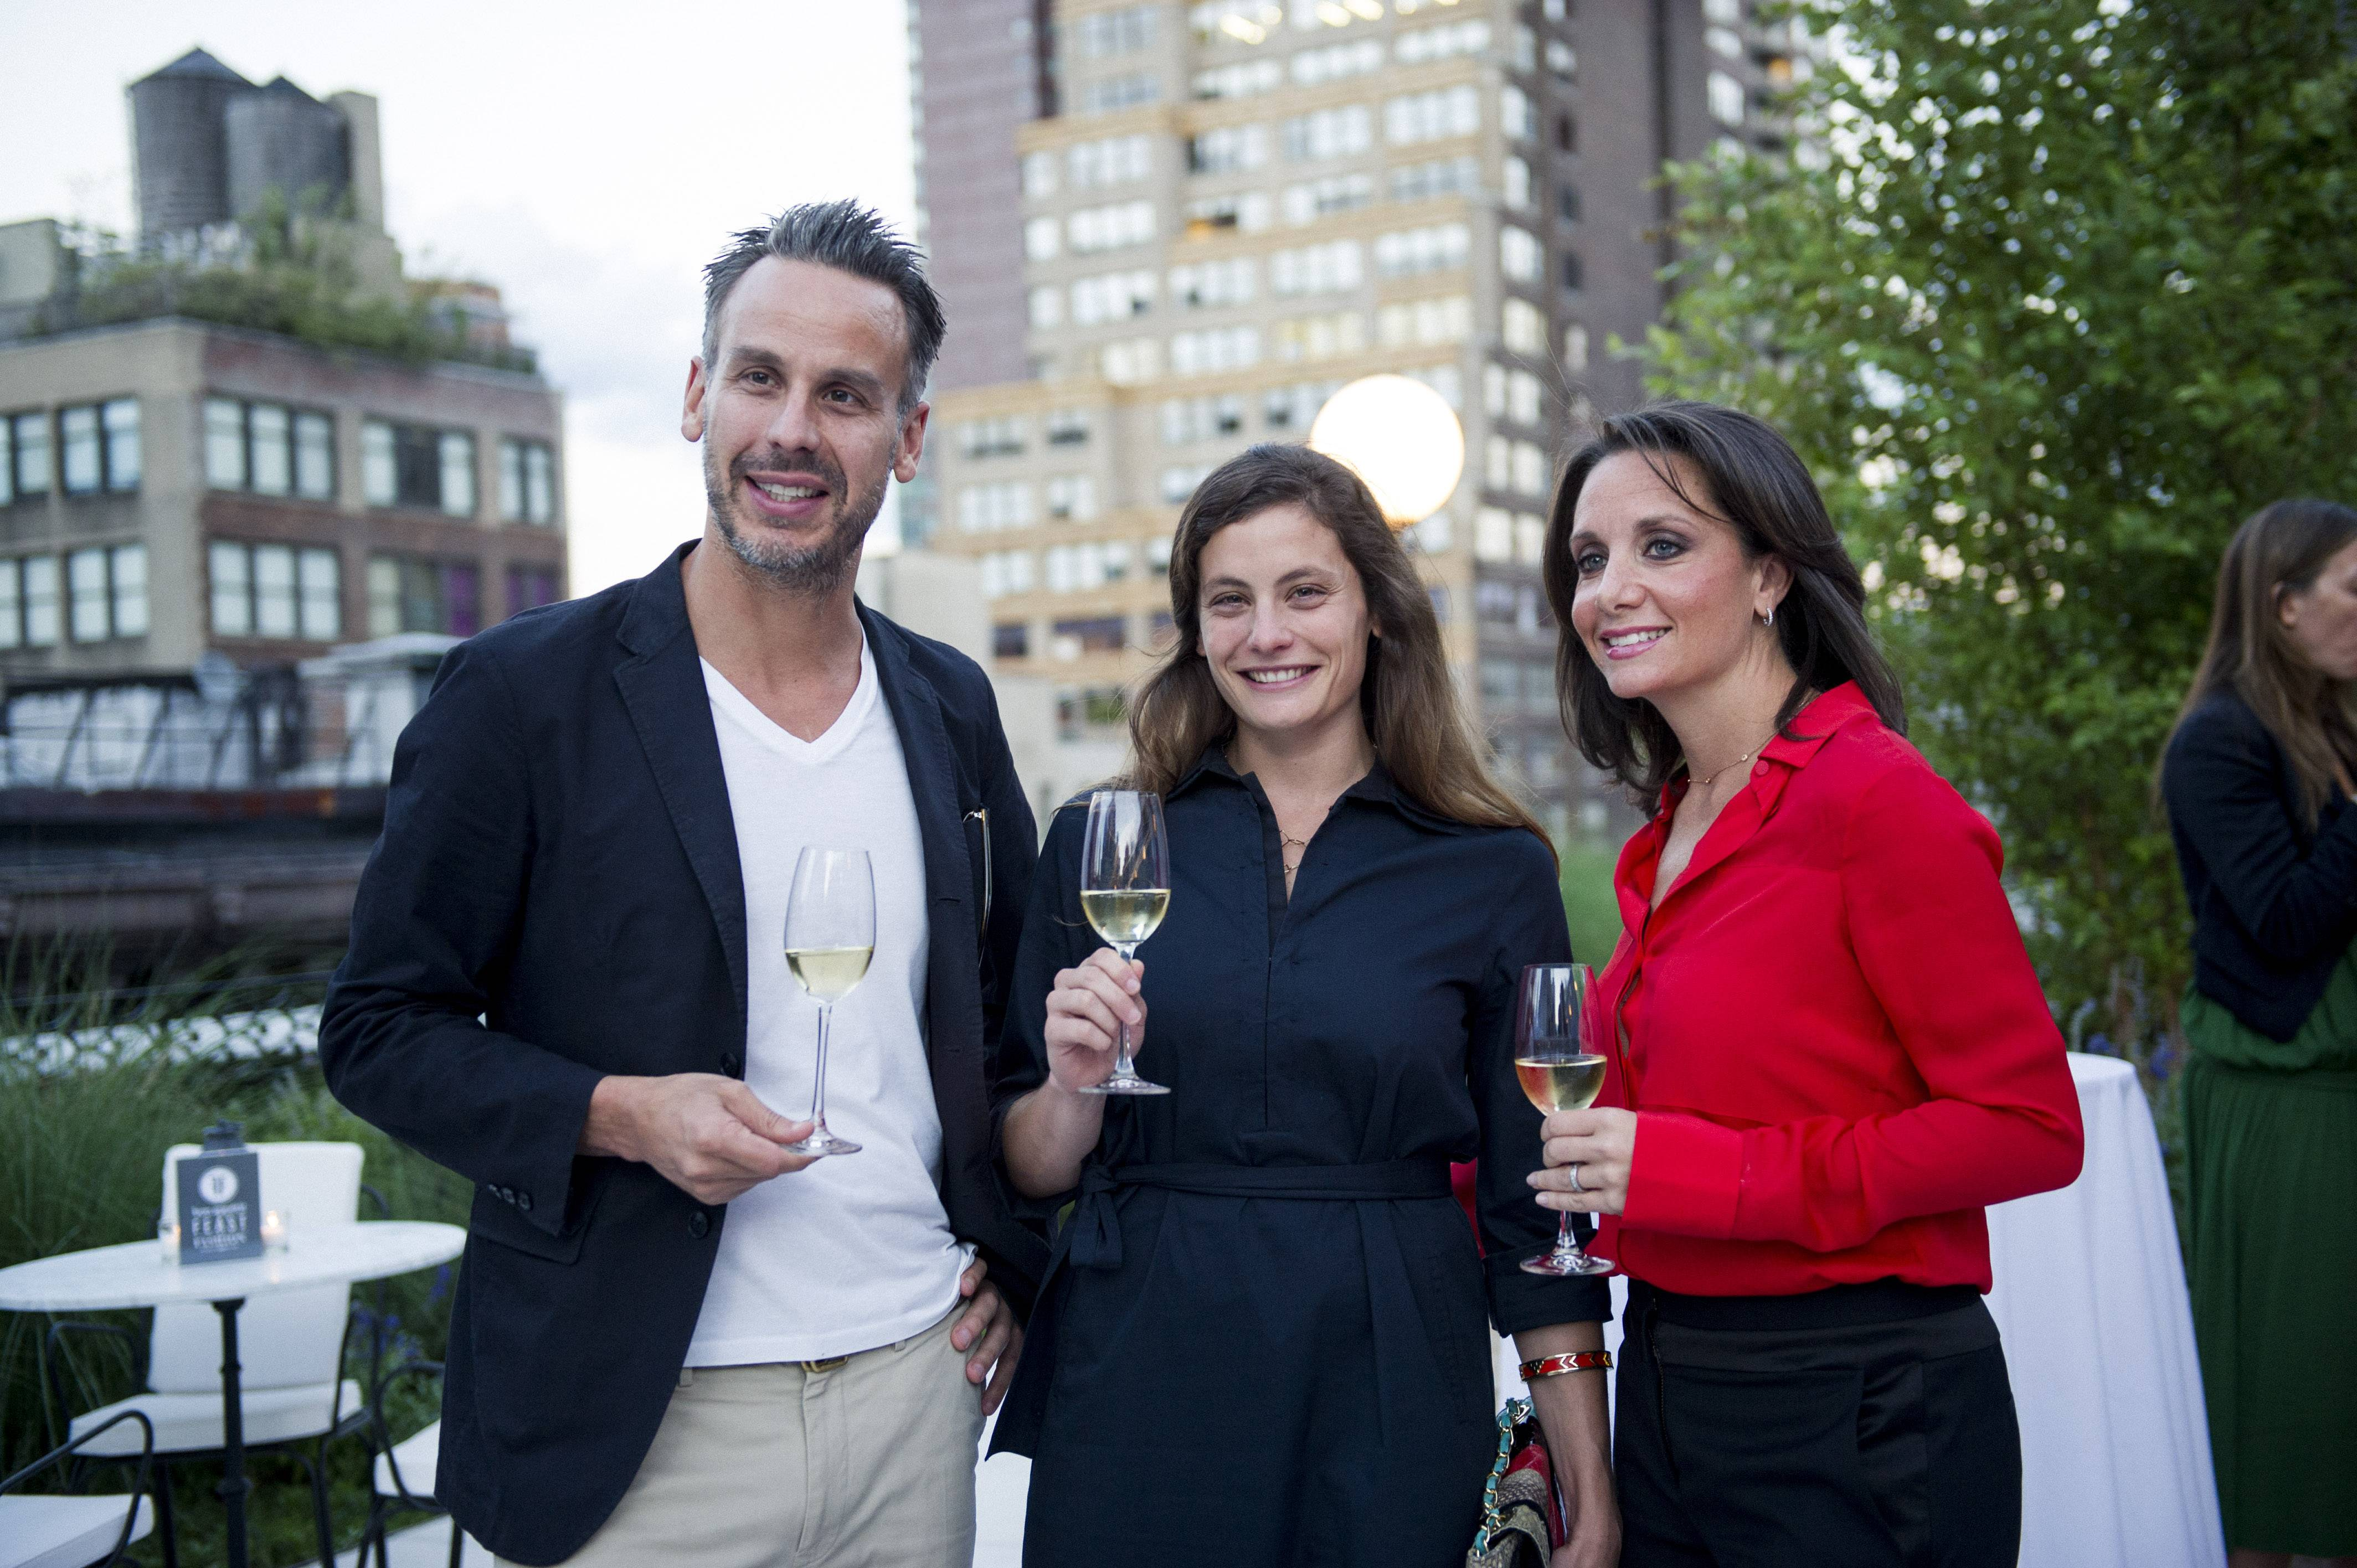 Feast or Fashion Bon Appetit dinner at NoMad Rooftop, co hosted by Adam Rapoport and Rachel Roy for New York Fashion Week